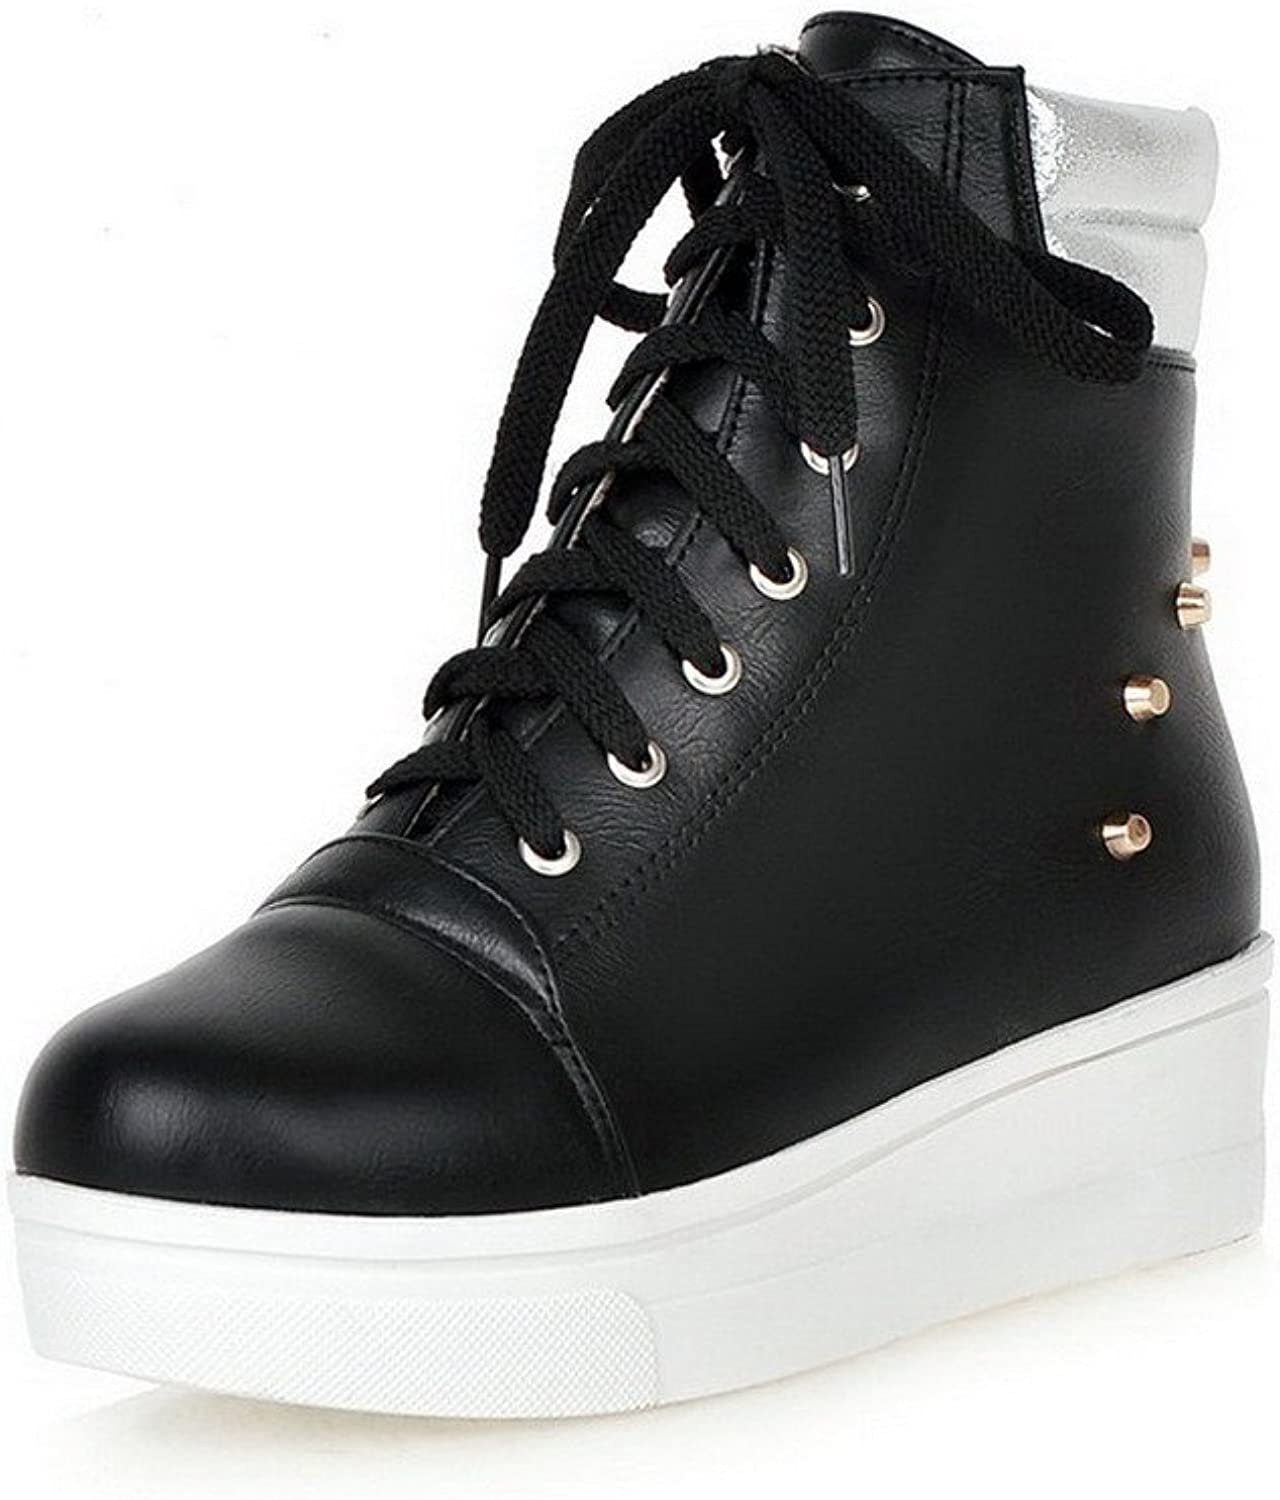 WeiPoot Women's Low-top Lace-up Soft Material Kitten-Heels Round Closed Toe Boots with Rivet